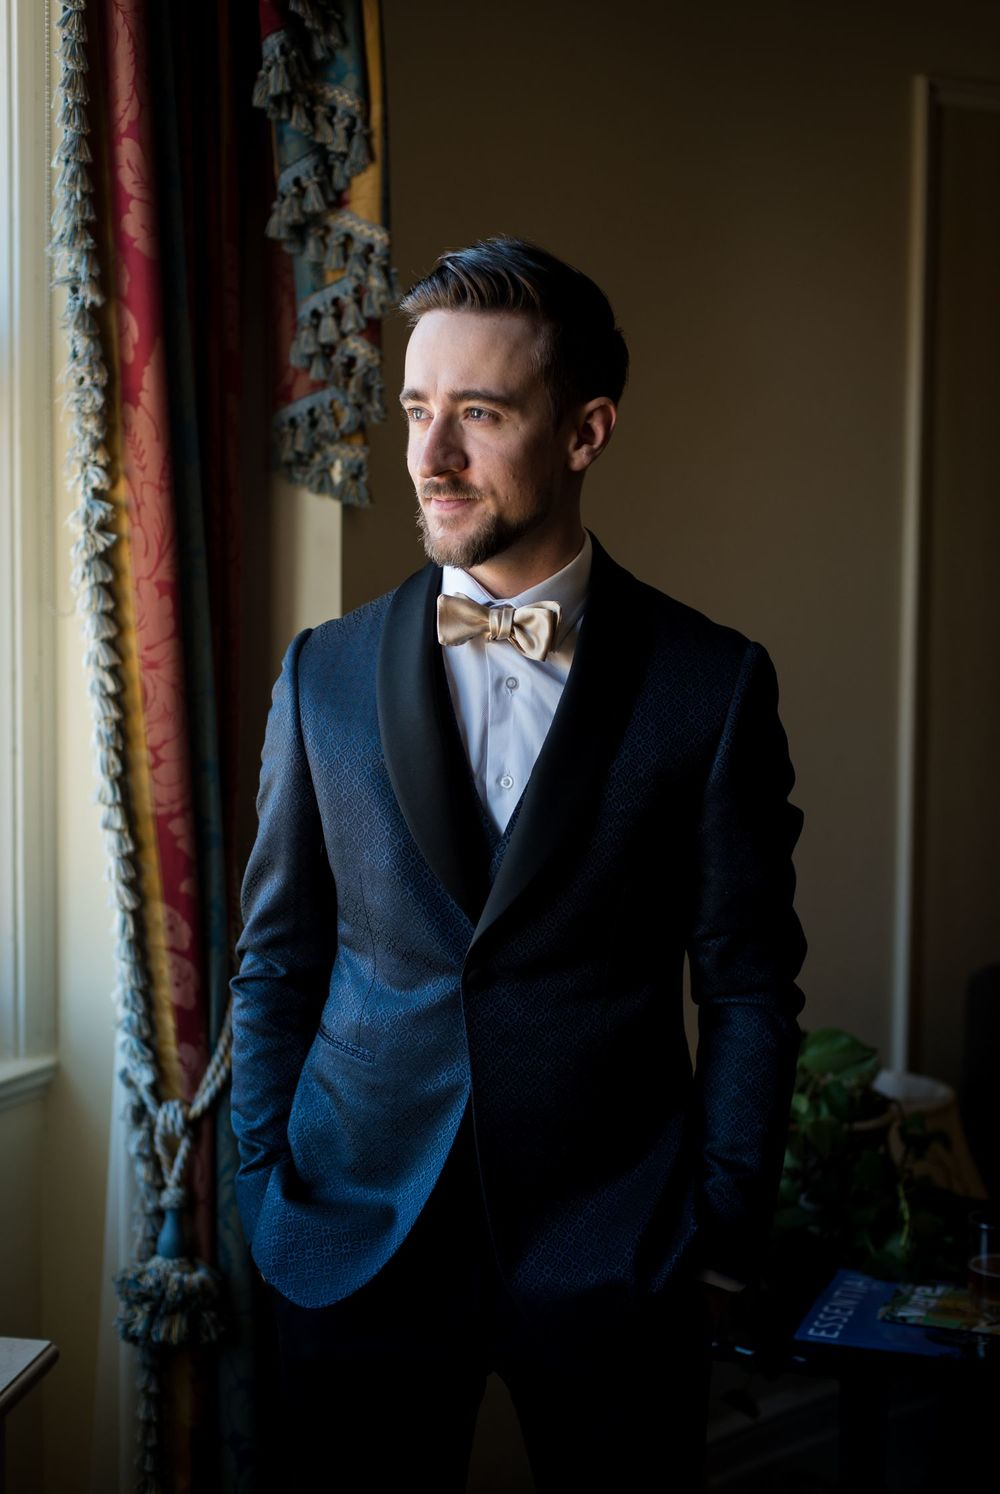 A portrait of the groom before the ceremony